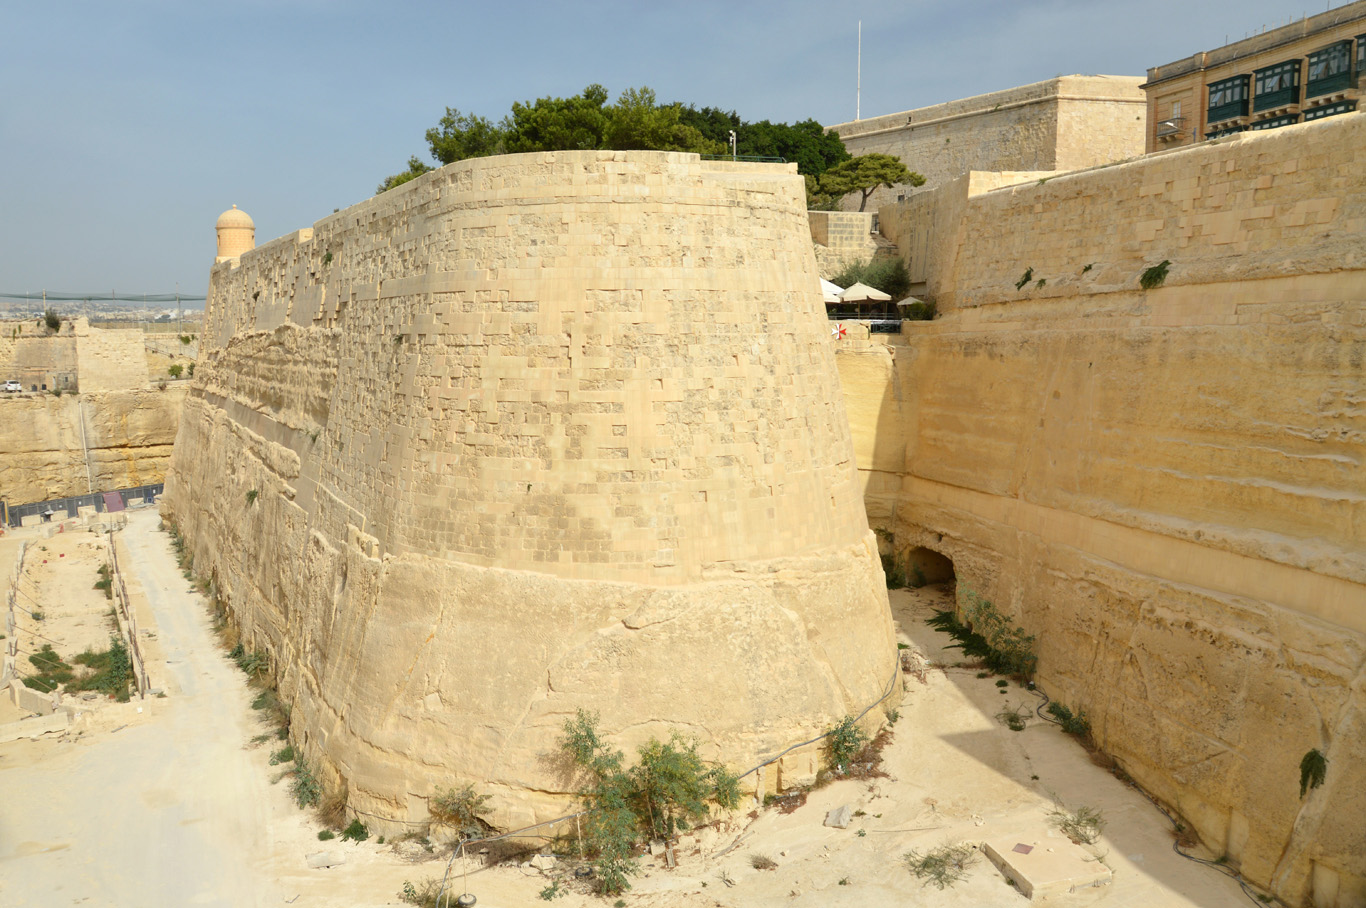 Defensive walls at the entrance to the old part